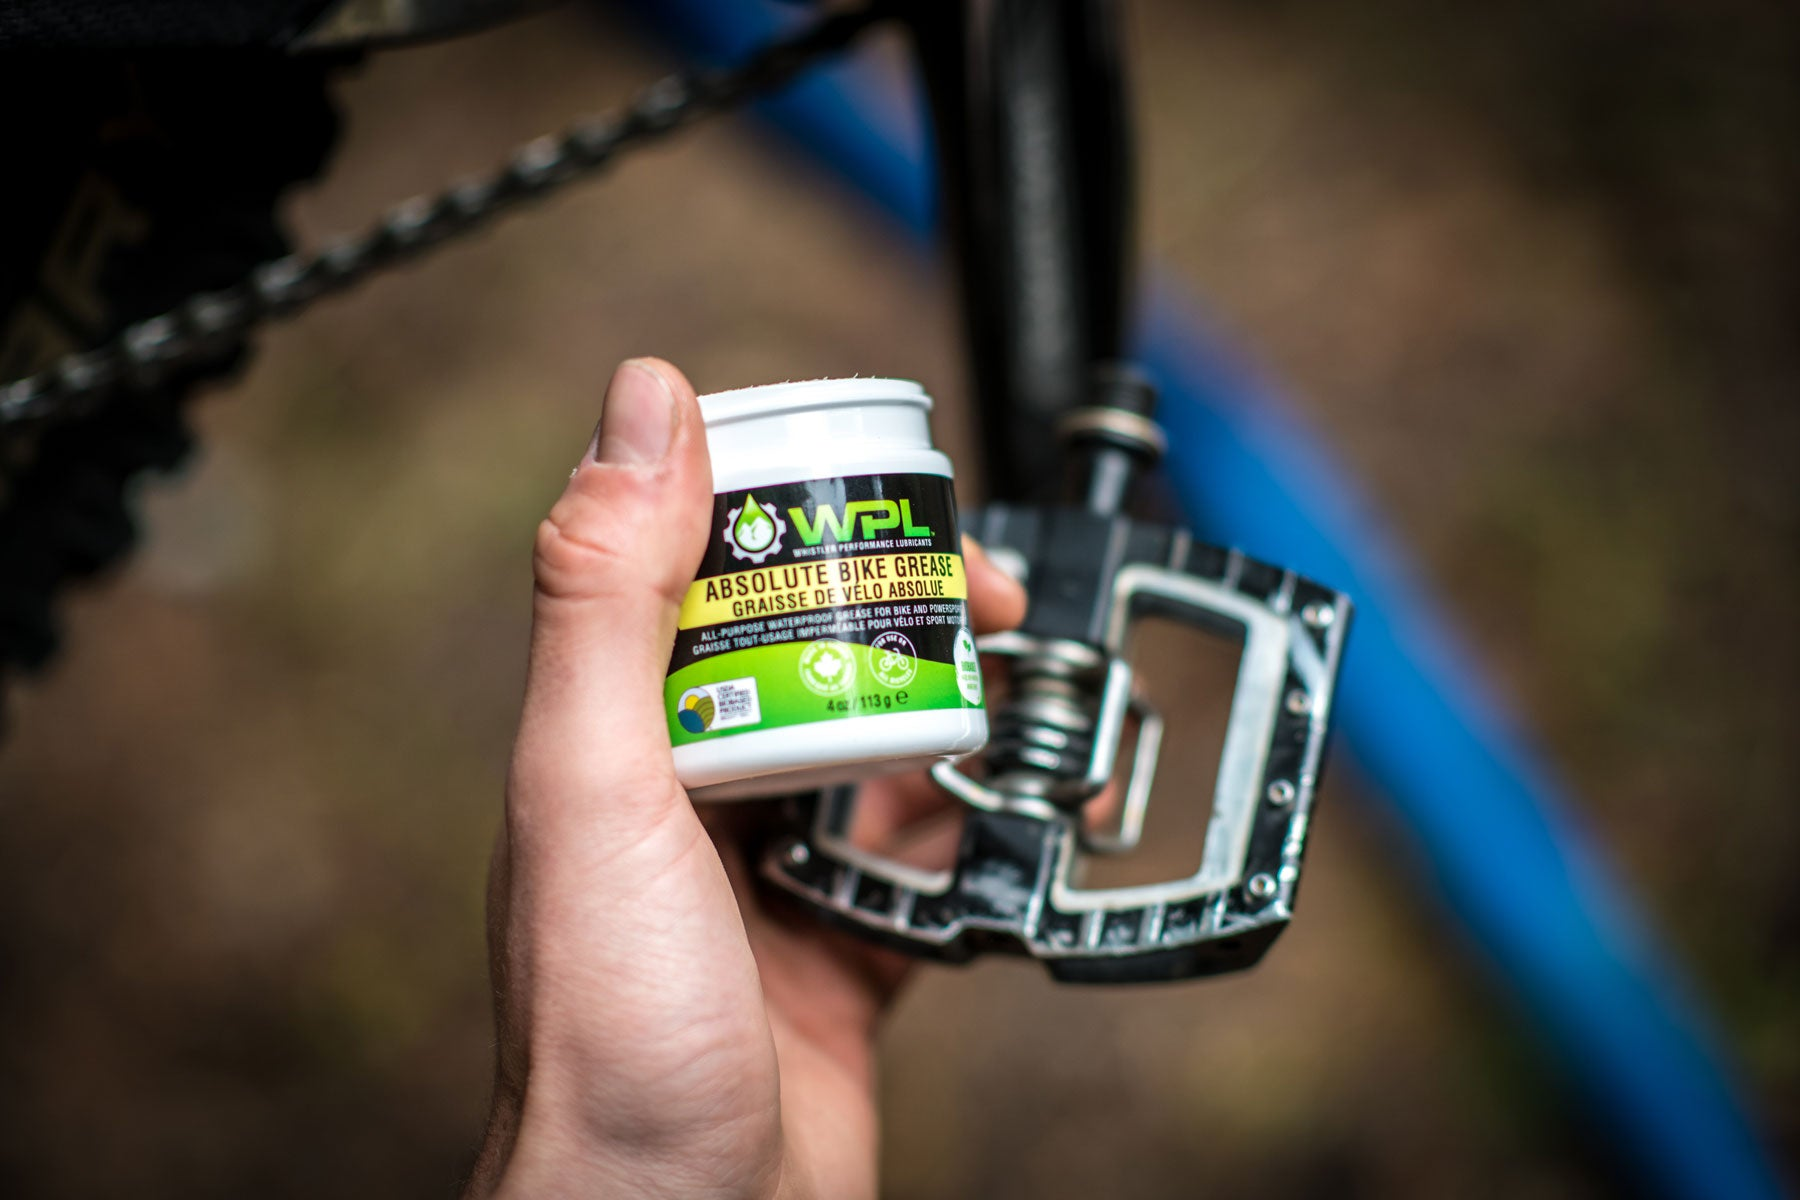 Ultimate Bike Grease